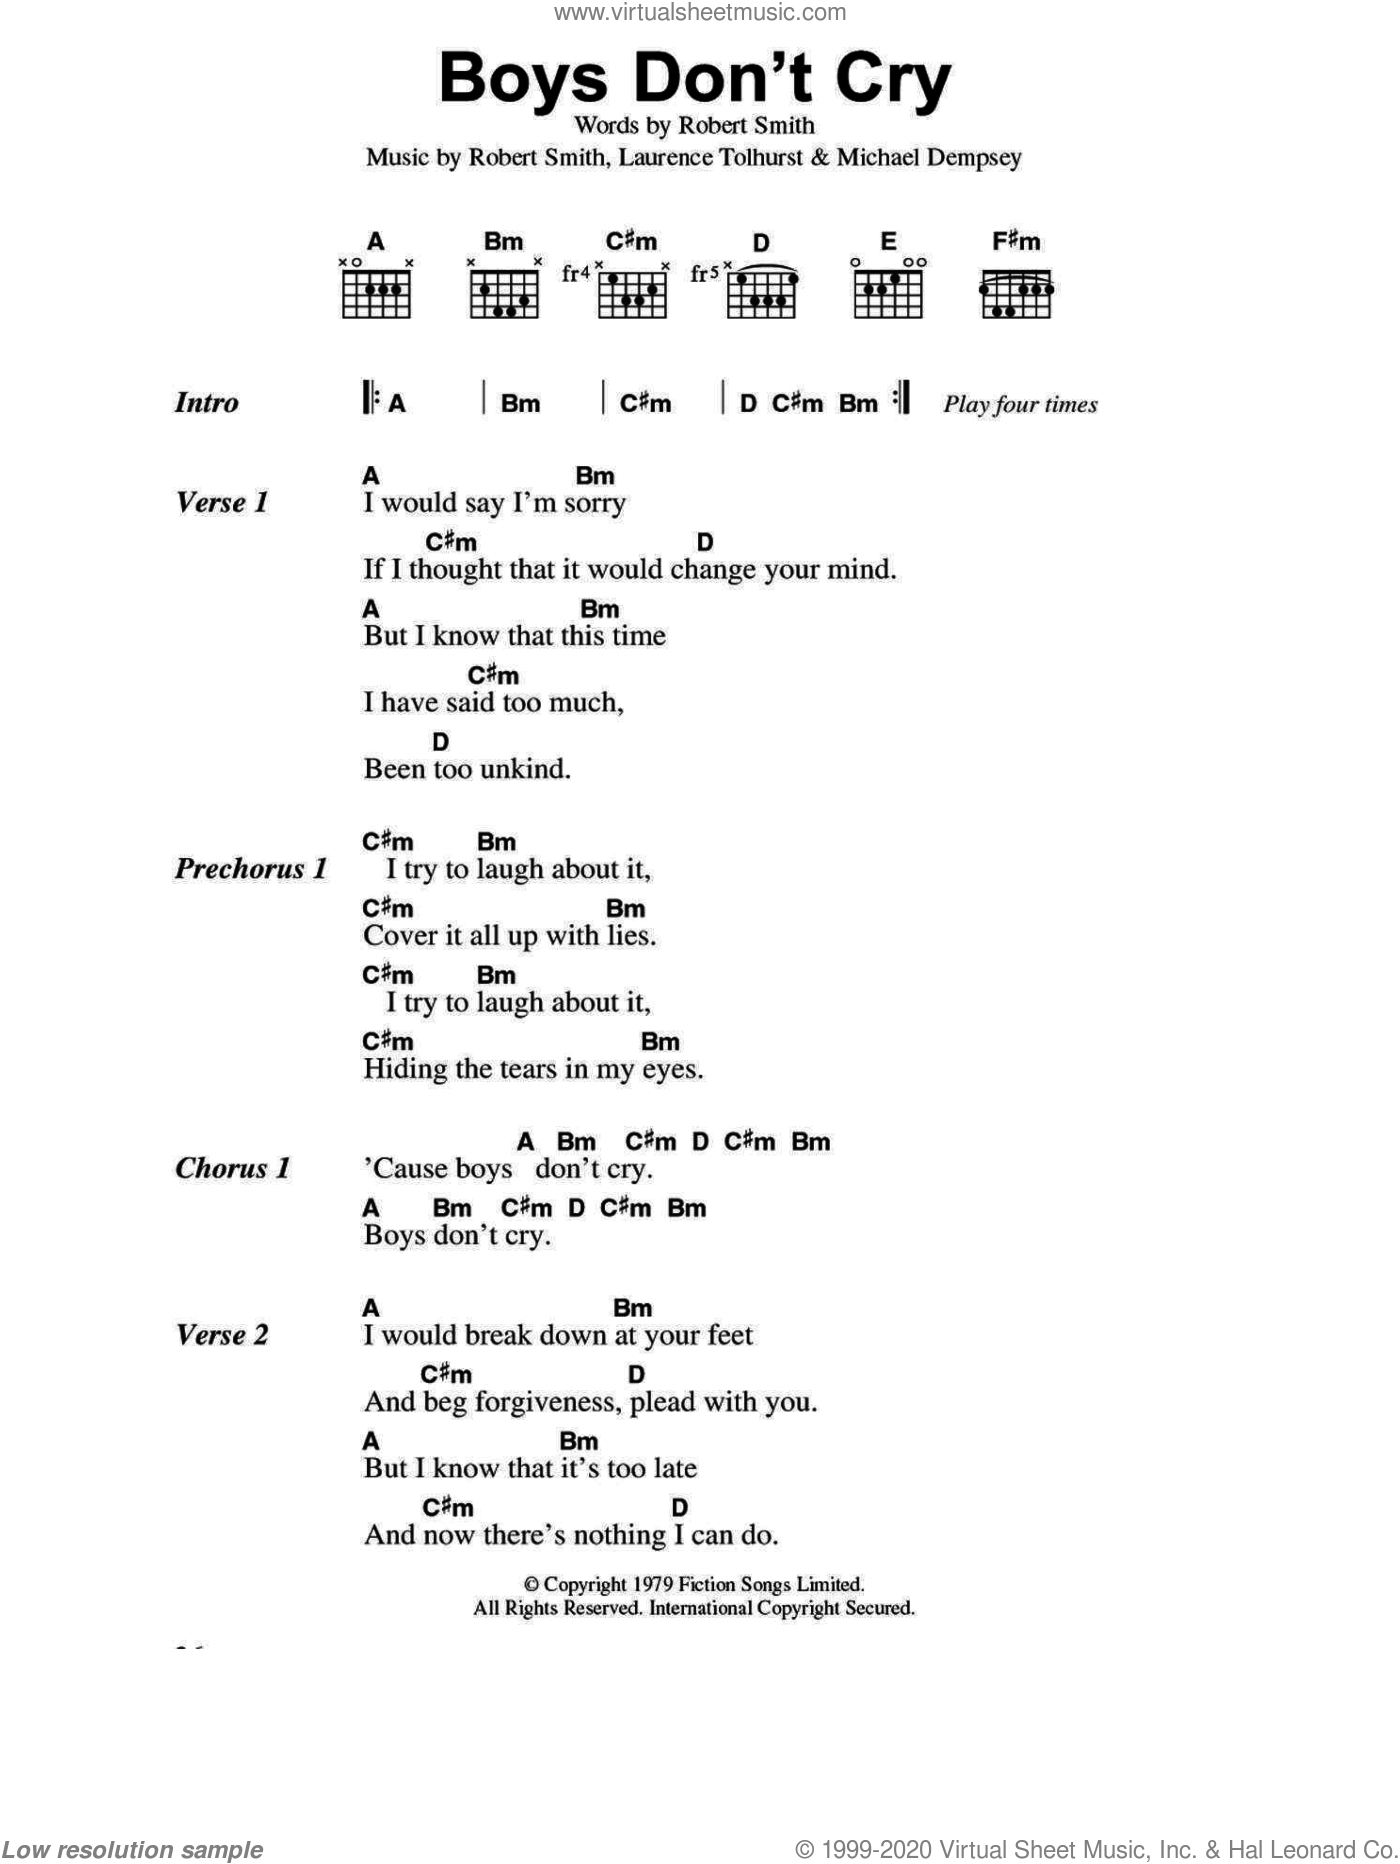 Boys Don't Cry sheet music for guitar (chords) by The Cure. Score Image Preview.